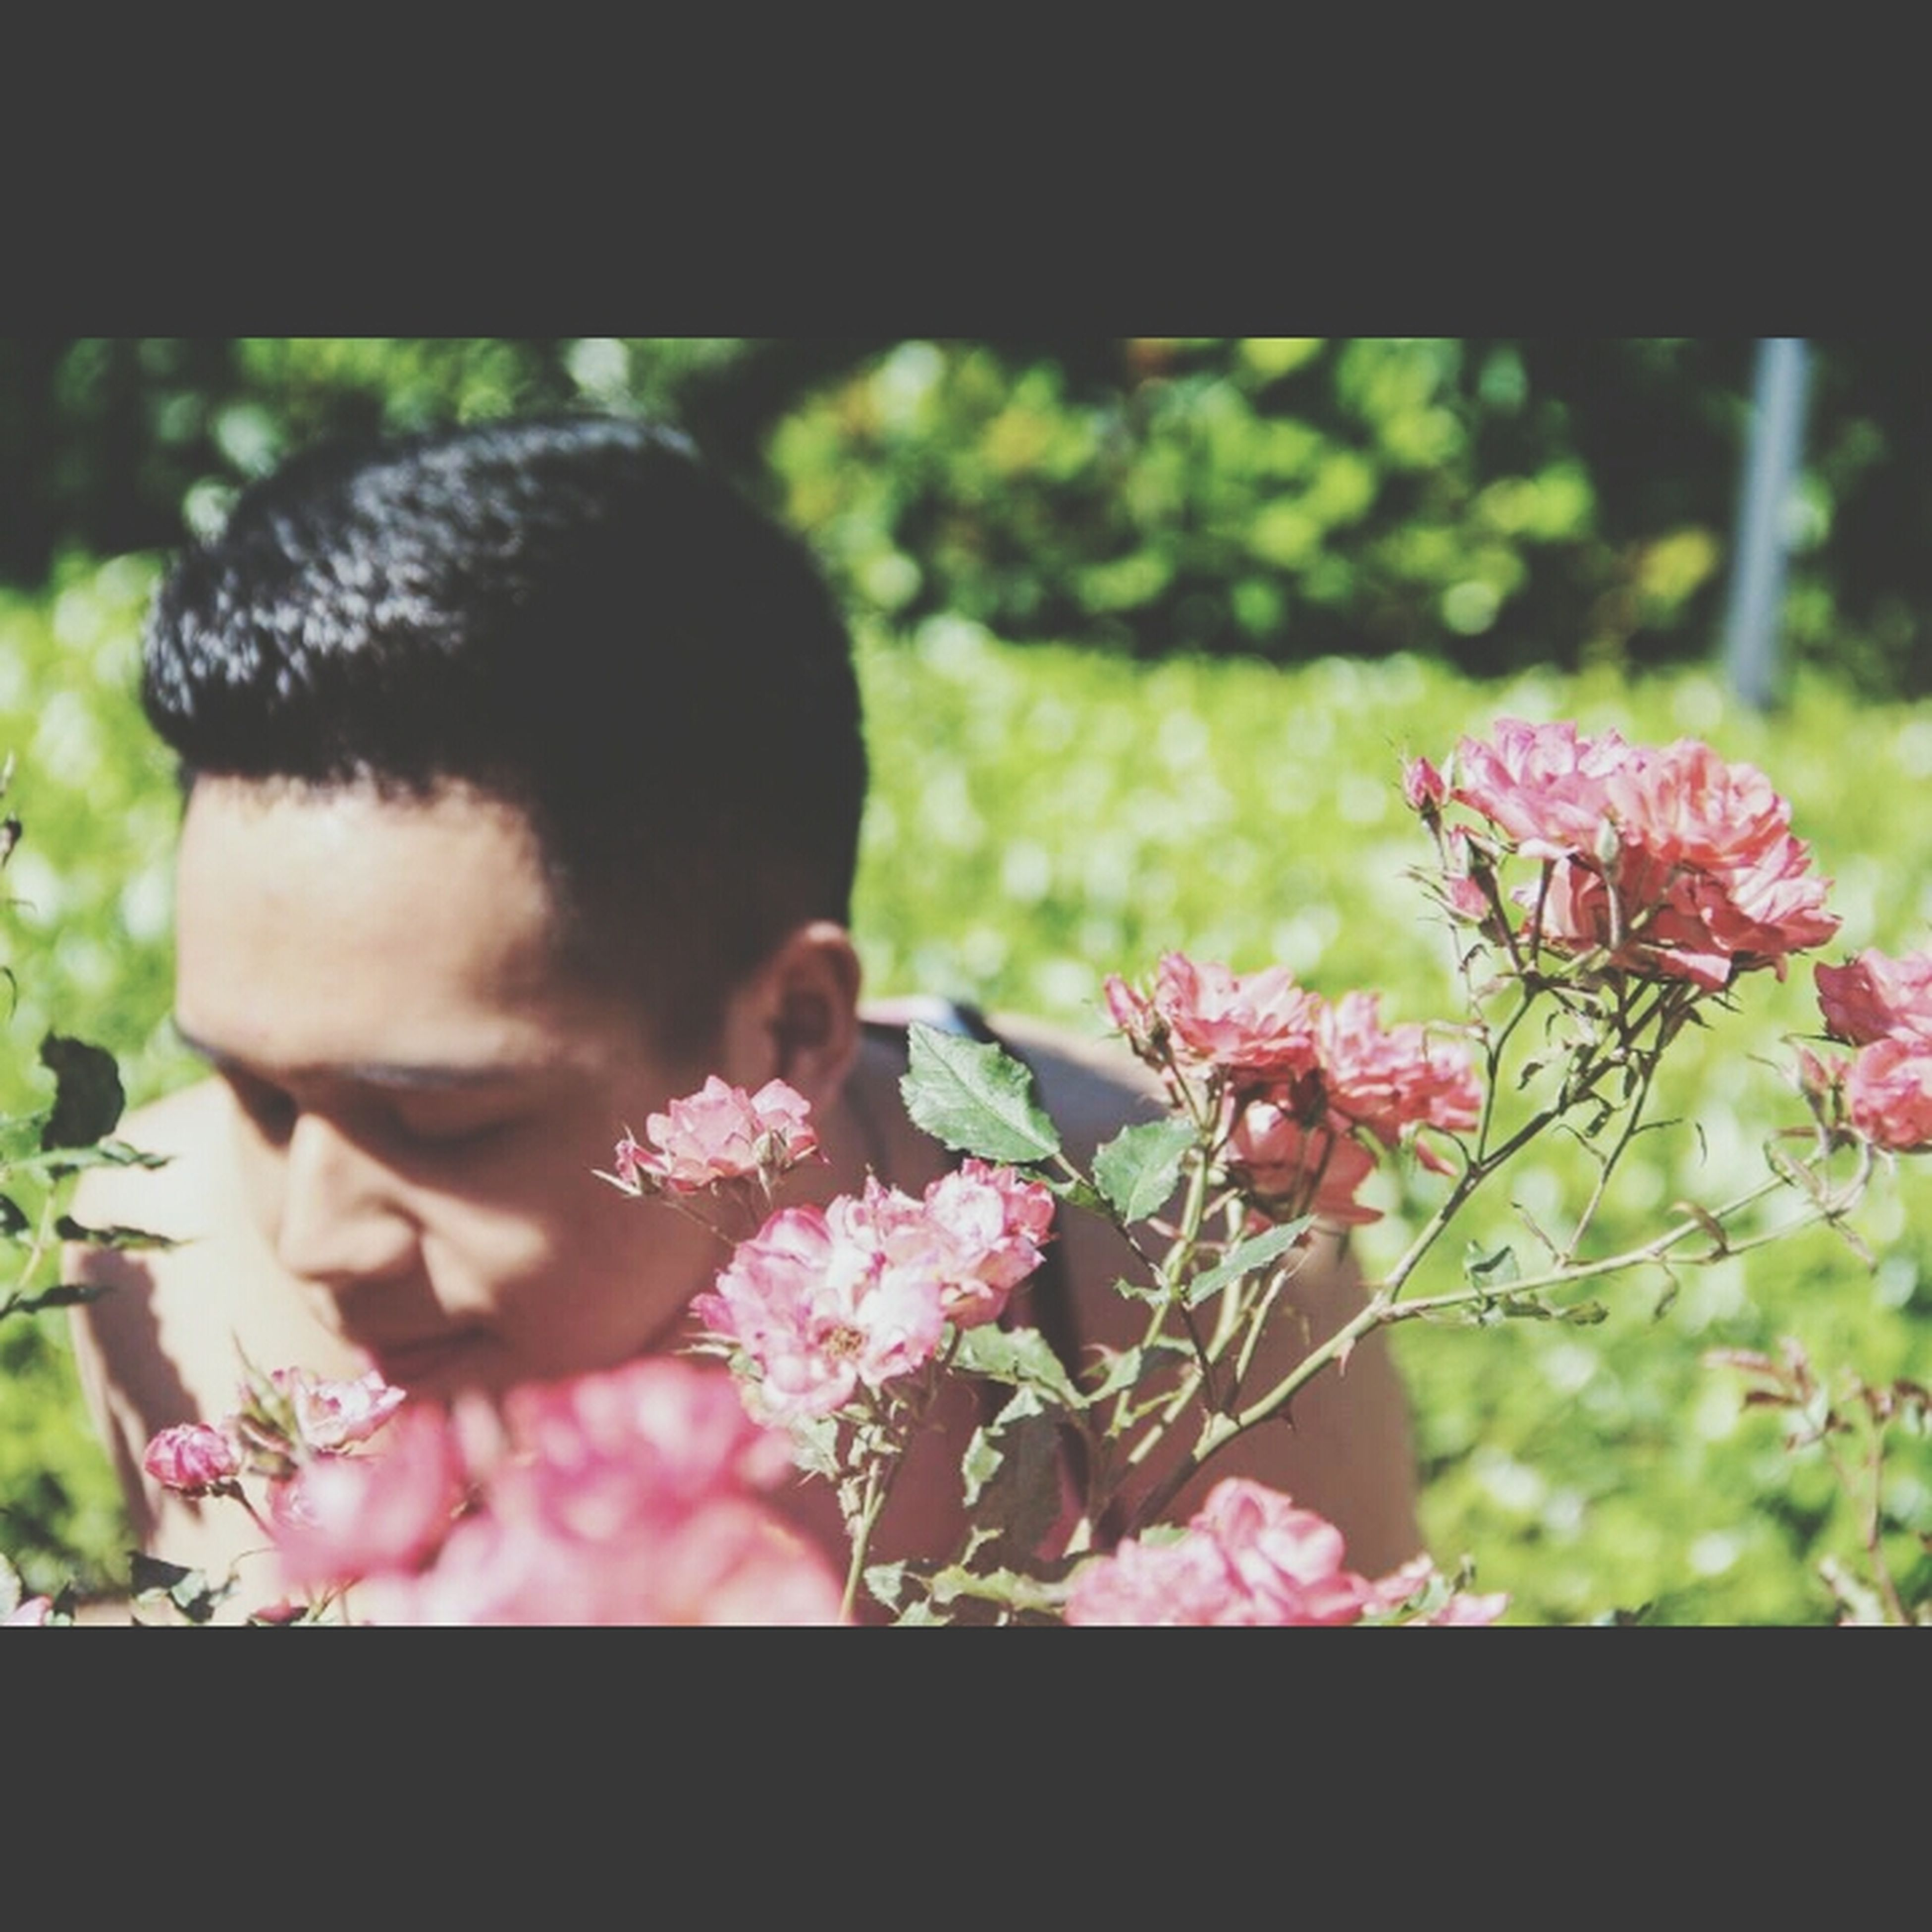 flower, focus on foreground, transfer print, fragility, lifestyles, childhood, growth, auto post production filter, leisure activity, freshness, plant, park - man made space, girls, close-up, person, elementary age, pink color, nature